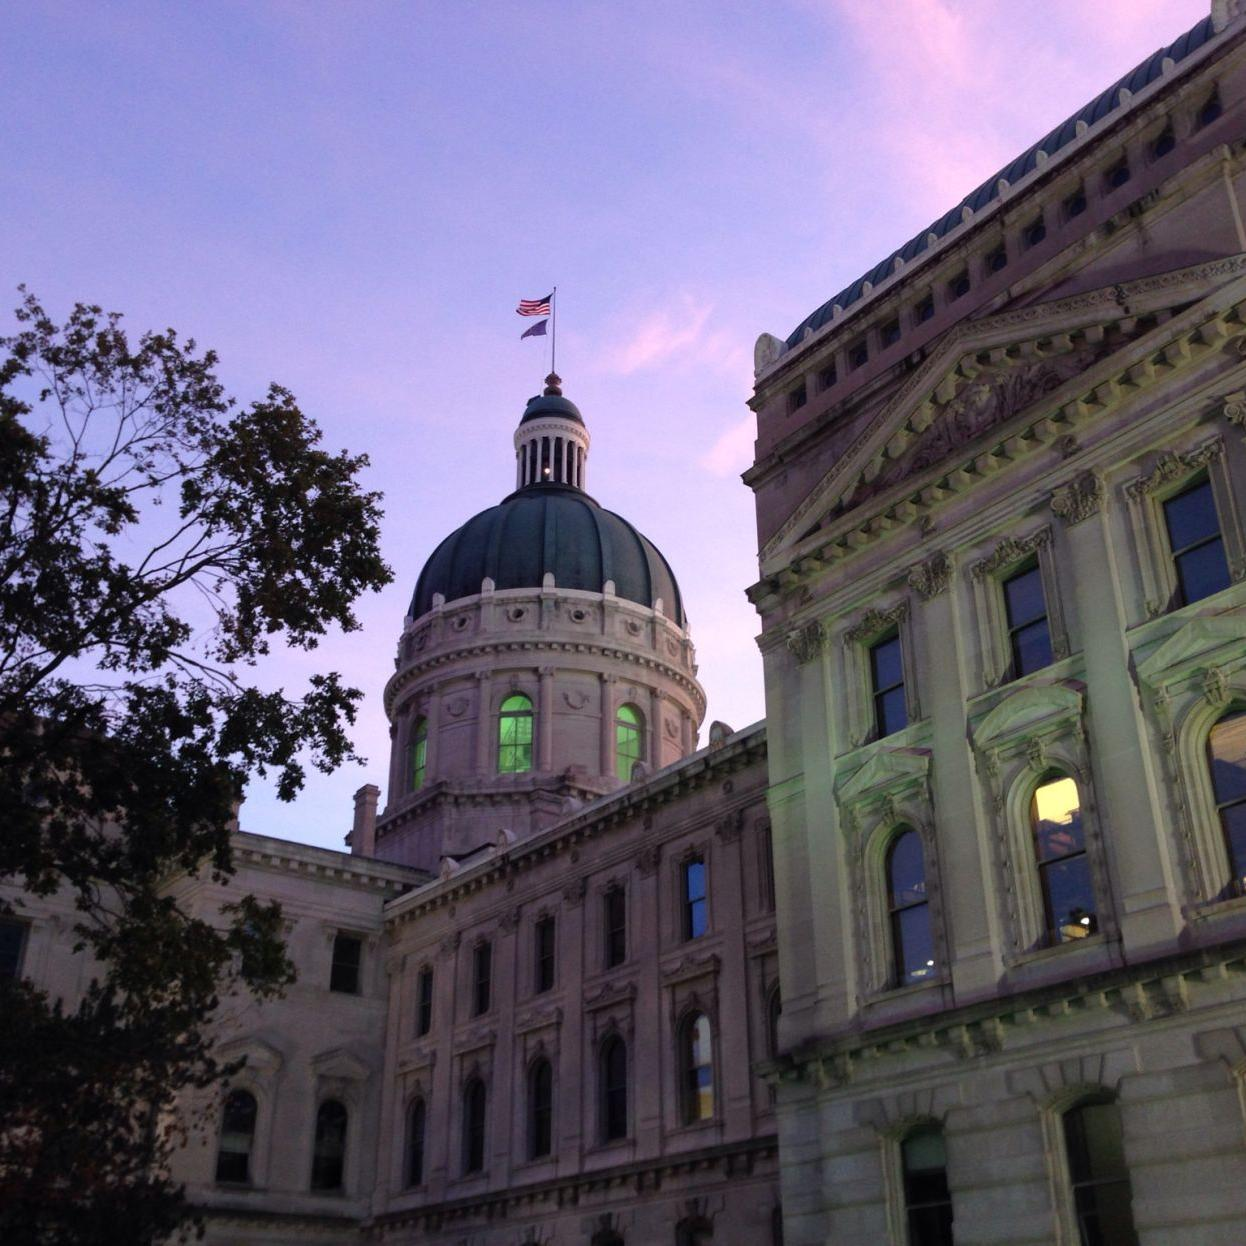 Indiana pays hefty price for enacting unconstitutional laws